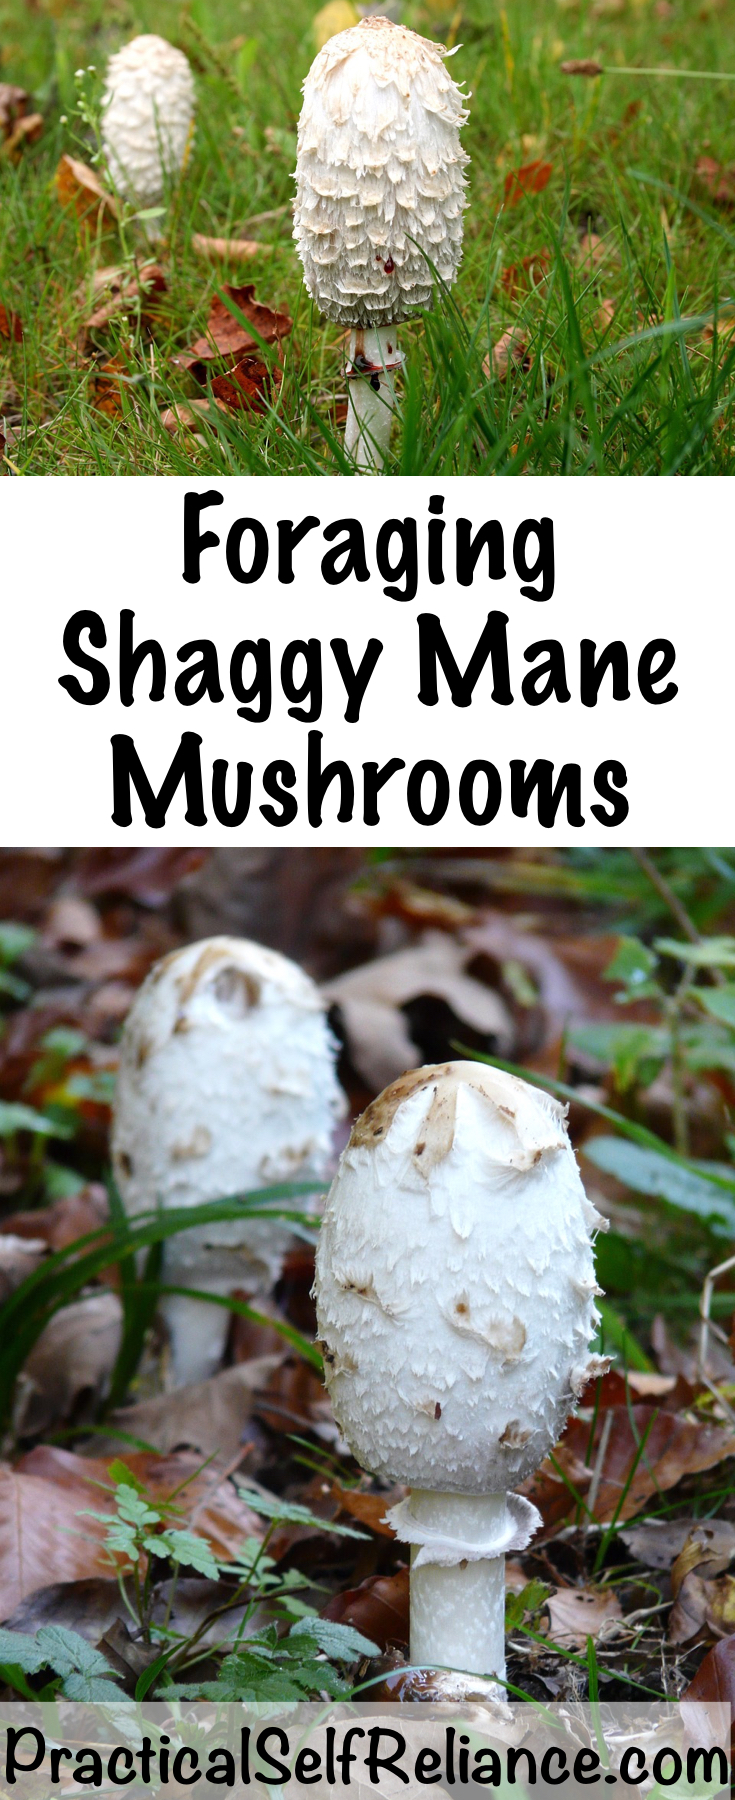 Foraging Shaggy Mane Mushrooms ~ How to identify and use this common wild mushroom #shaggymanes #mushrooms #mushroomhunting #foraging #forage #wildedibles #wildcrafting #ediblemushrooms #selfsufficiency